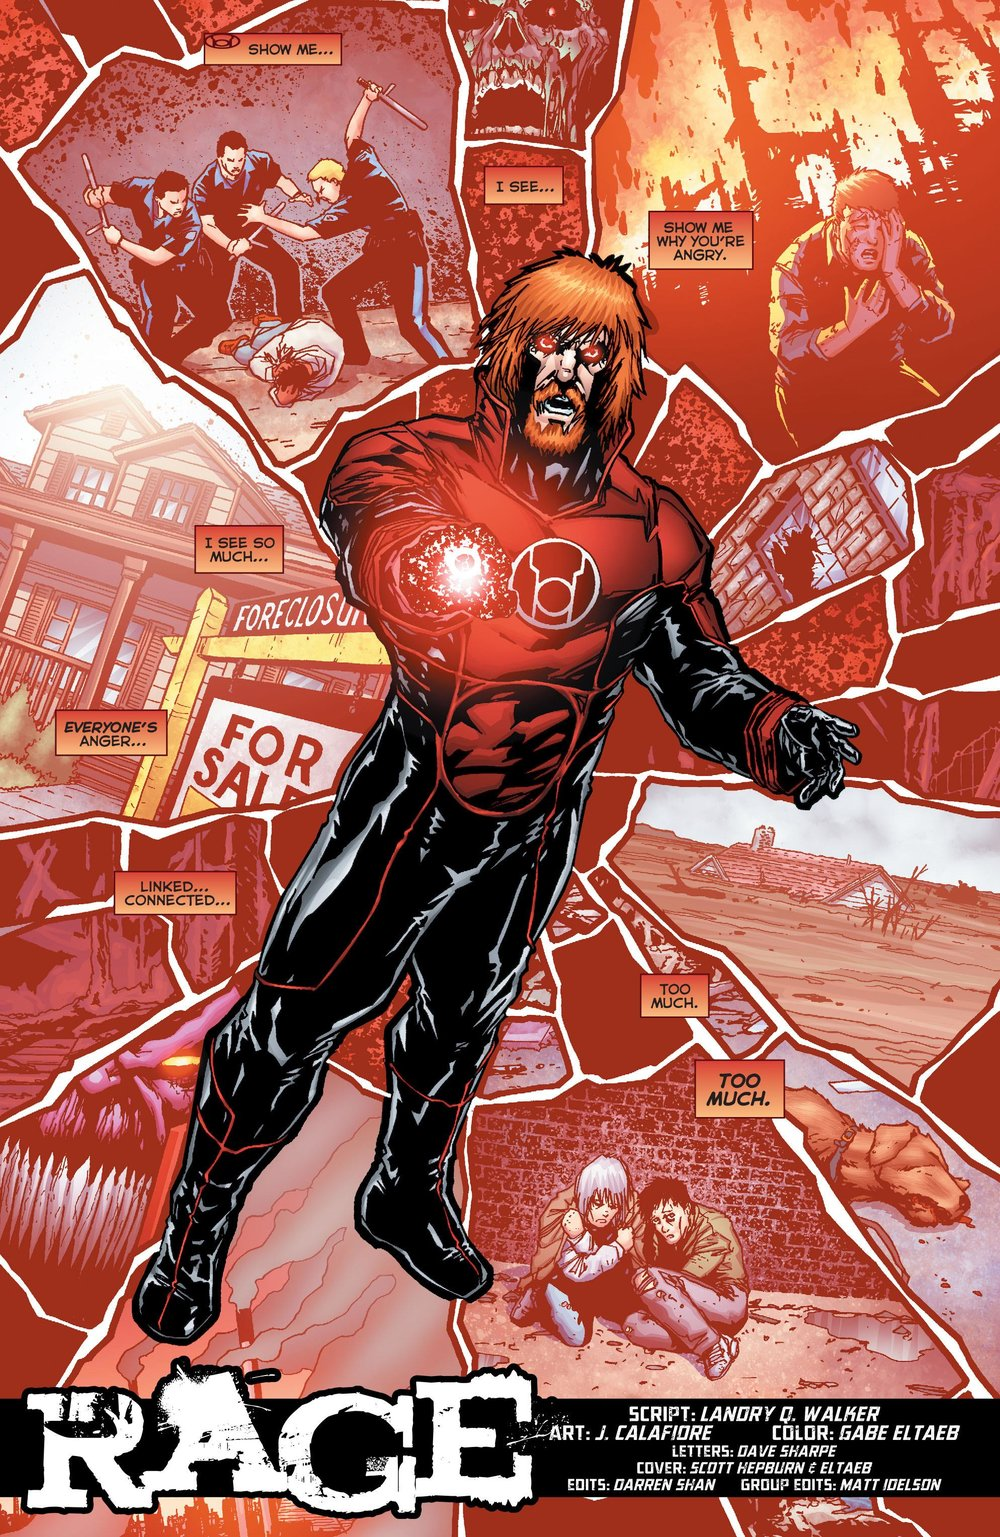 Red Lanterns #38 by Landry Q. Walker and J. Calafiore (2015)